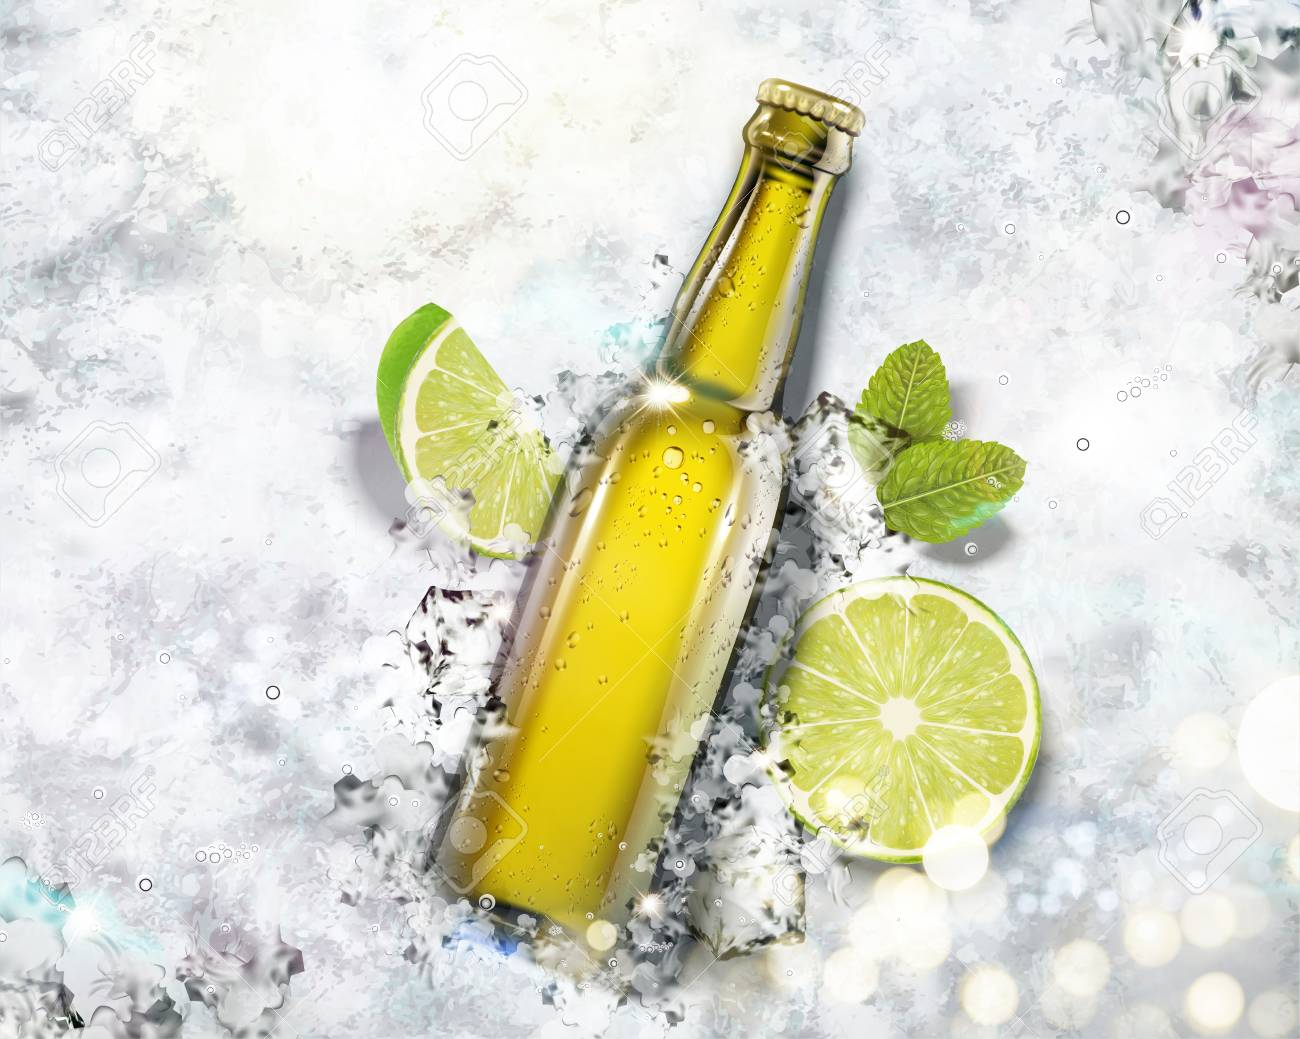 Beverage in glass bottle on crushed ice background in 3d illustration, top view angle - 111636665